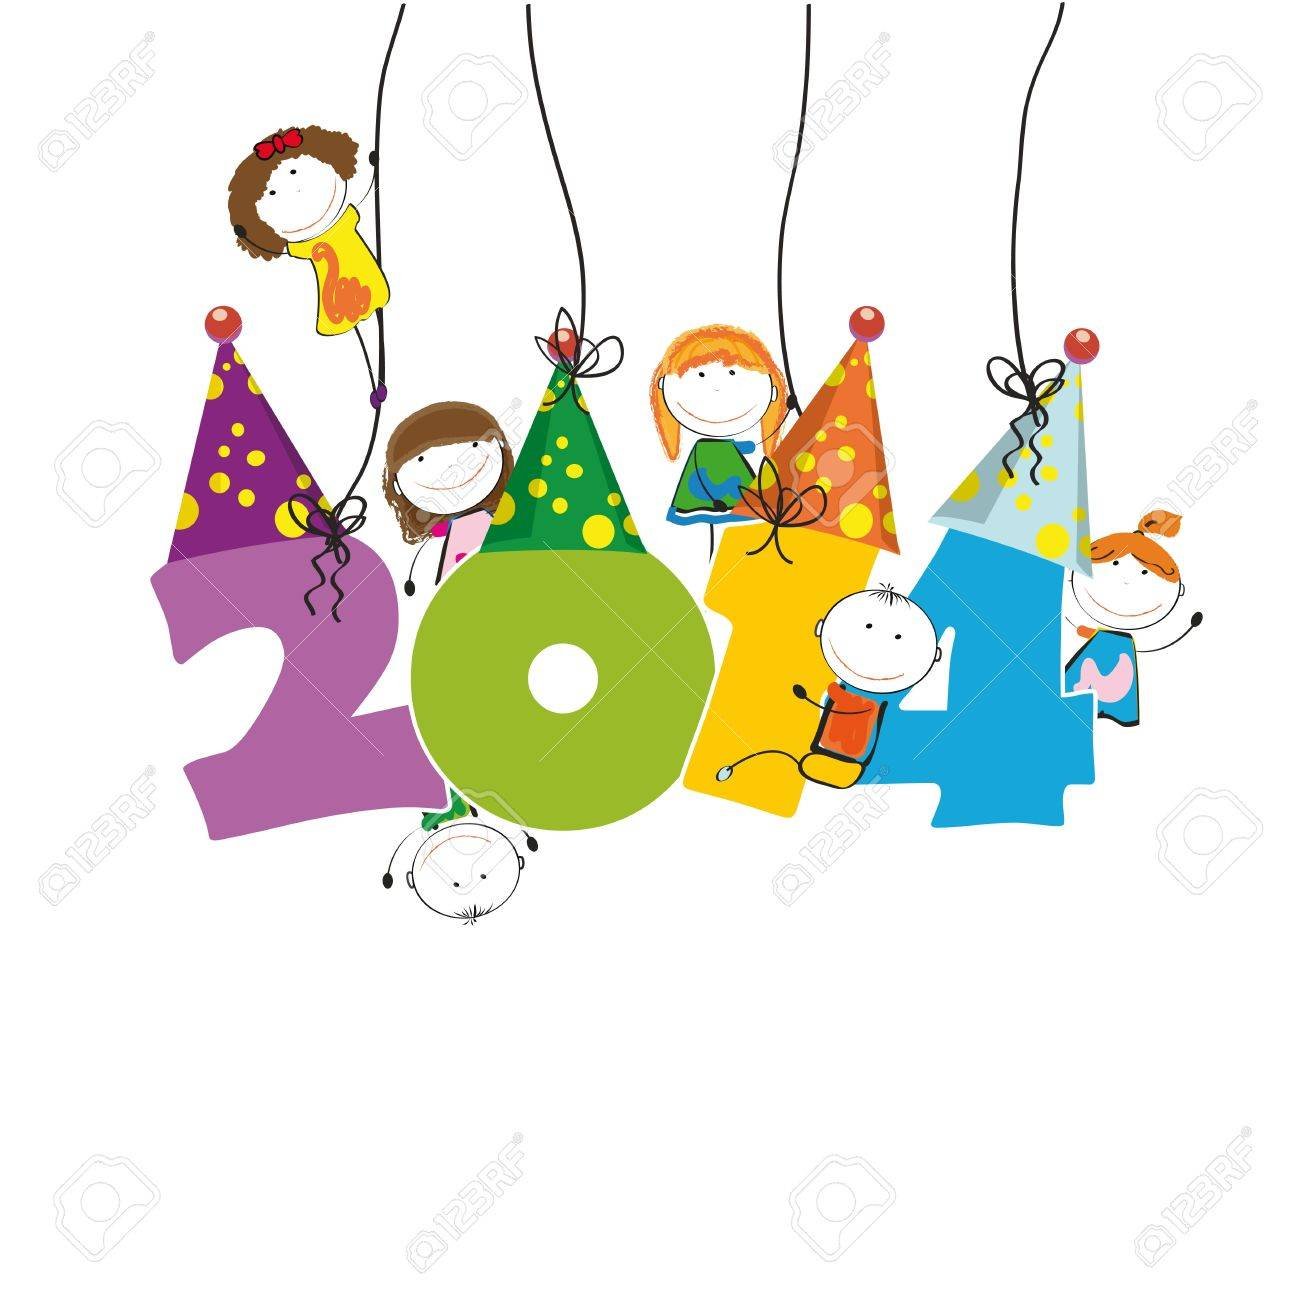 Cute and colorful card on New Year 2014 Stock Vector - 21600985